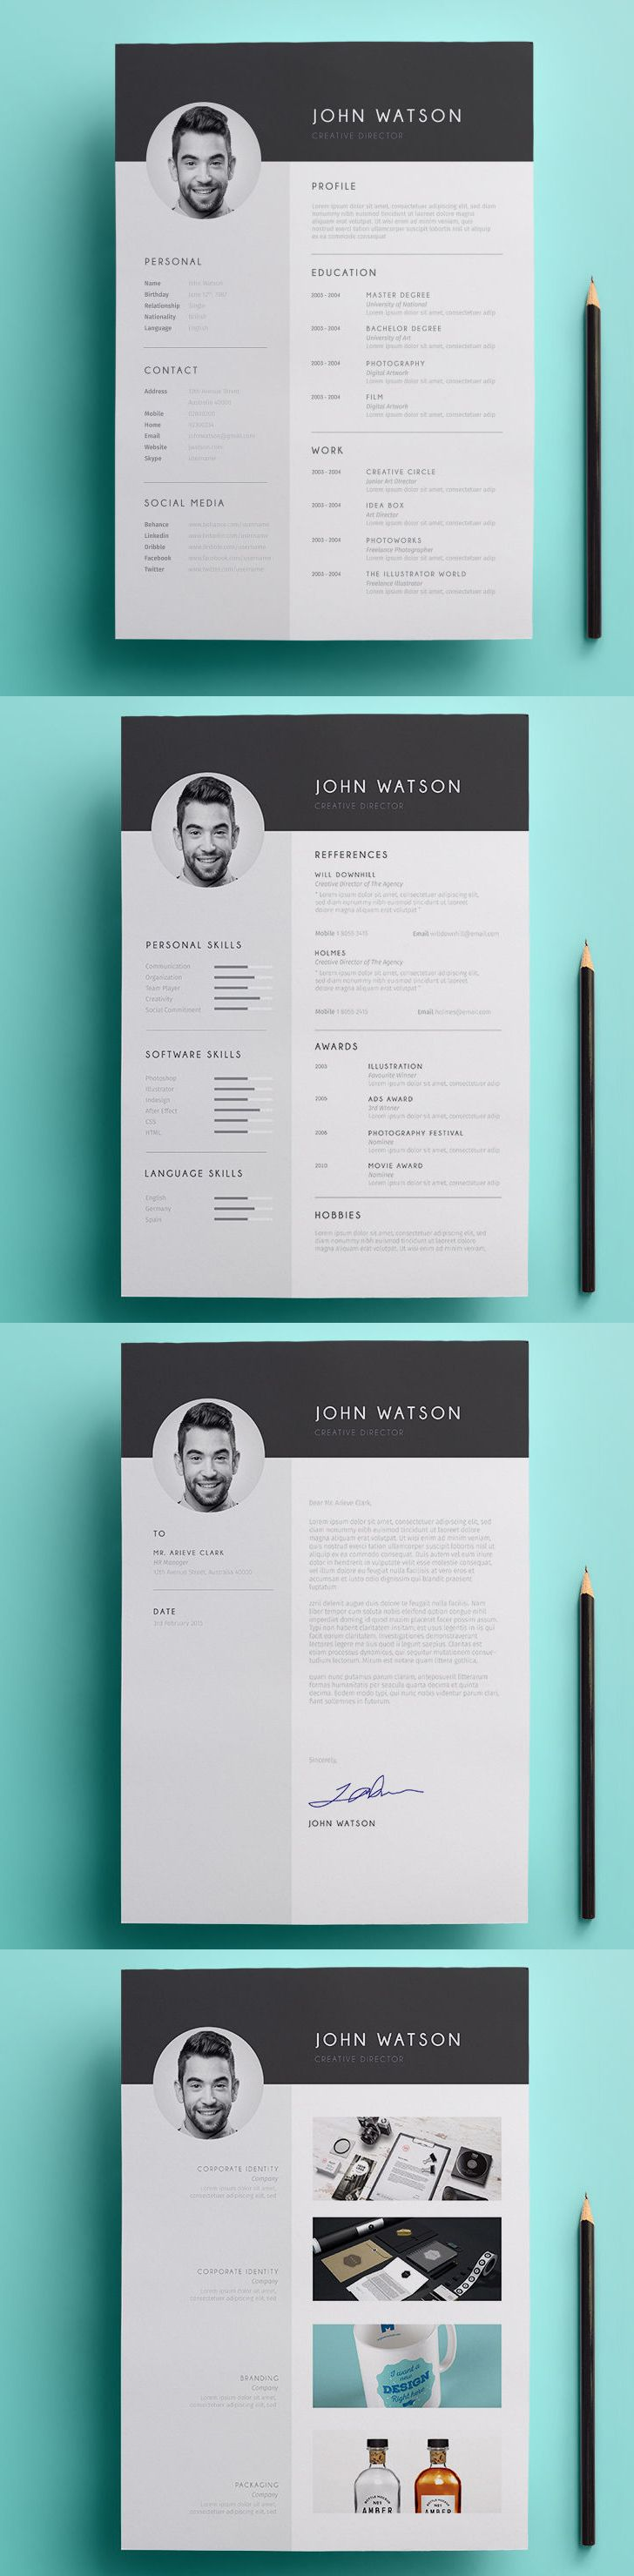 minimalist resume 02 by aarleykaiven on envato elements